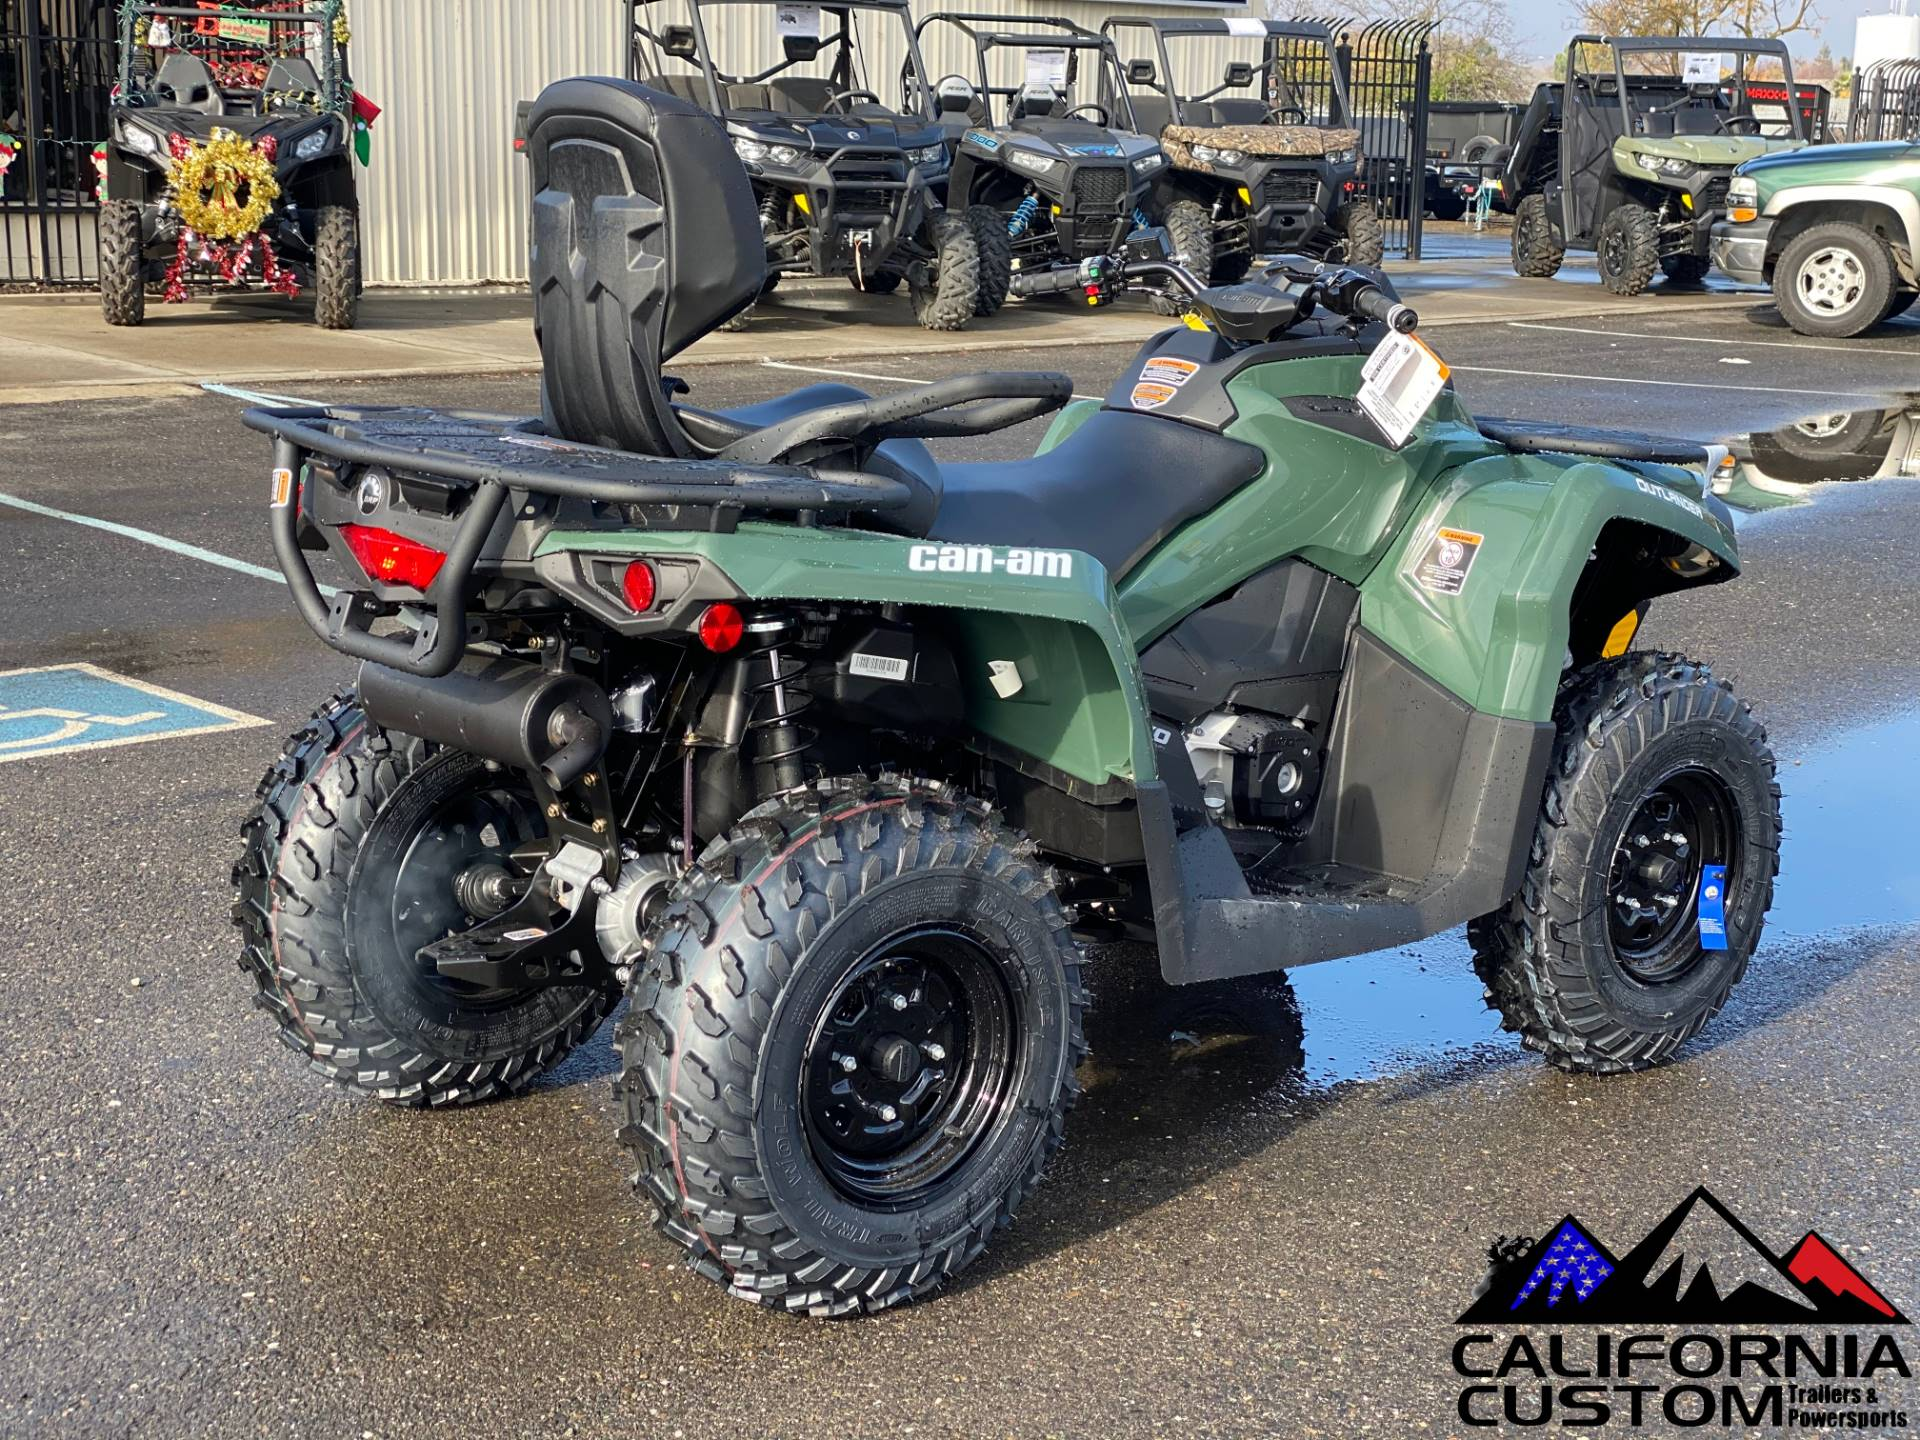 2021 Can-Am Outlander MAX DPS 570 in Merced, California - Photo 5